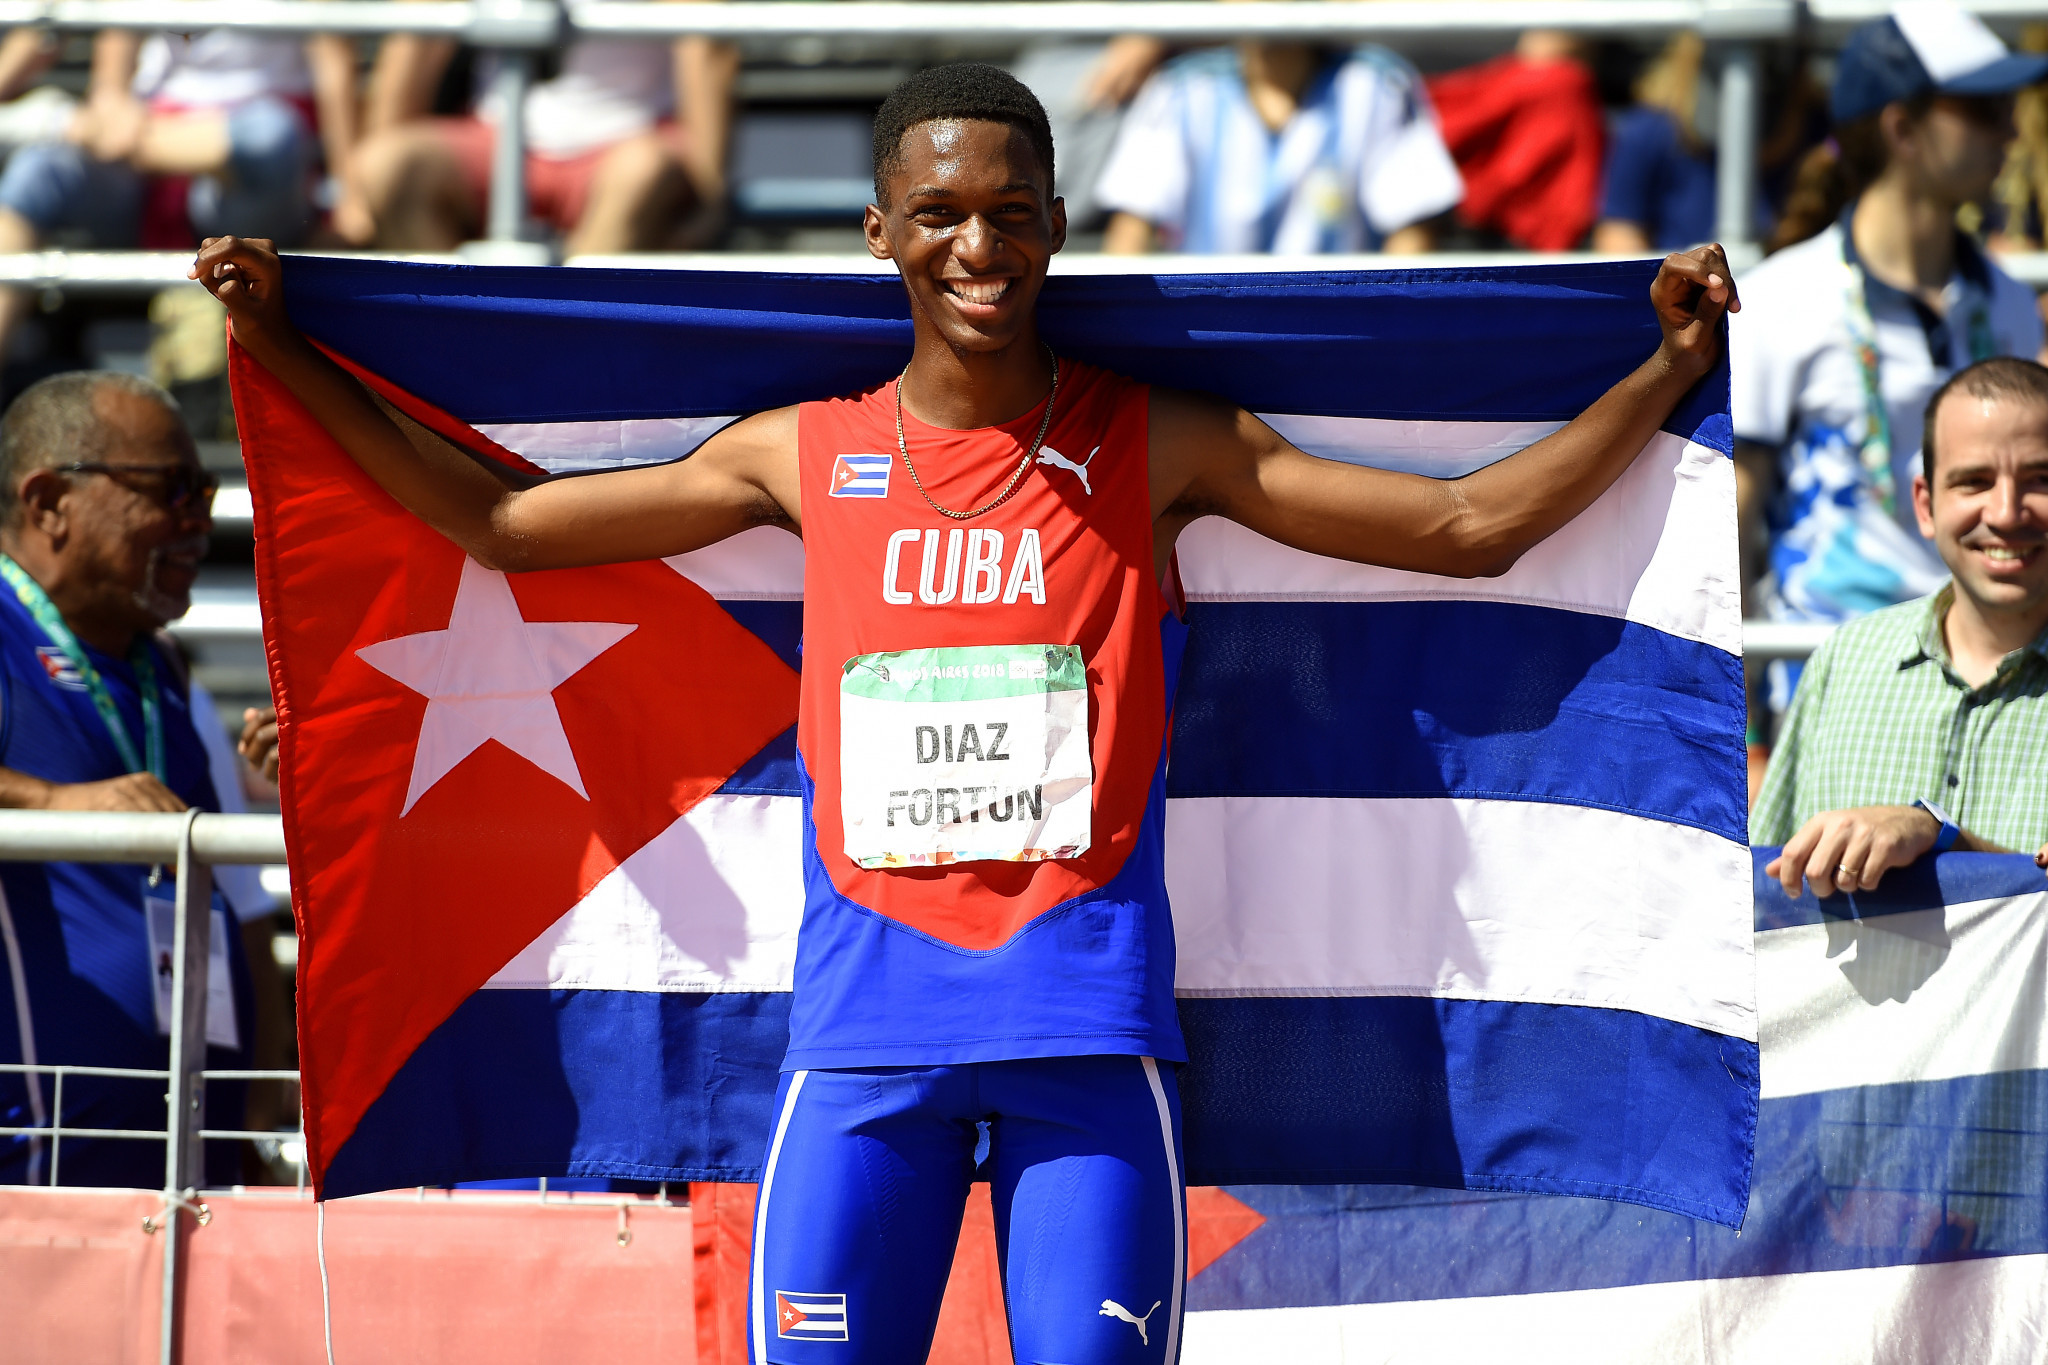 World under-20 champions enhance reputations with triple jump golds at Buenos Aires 2018